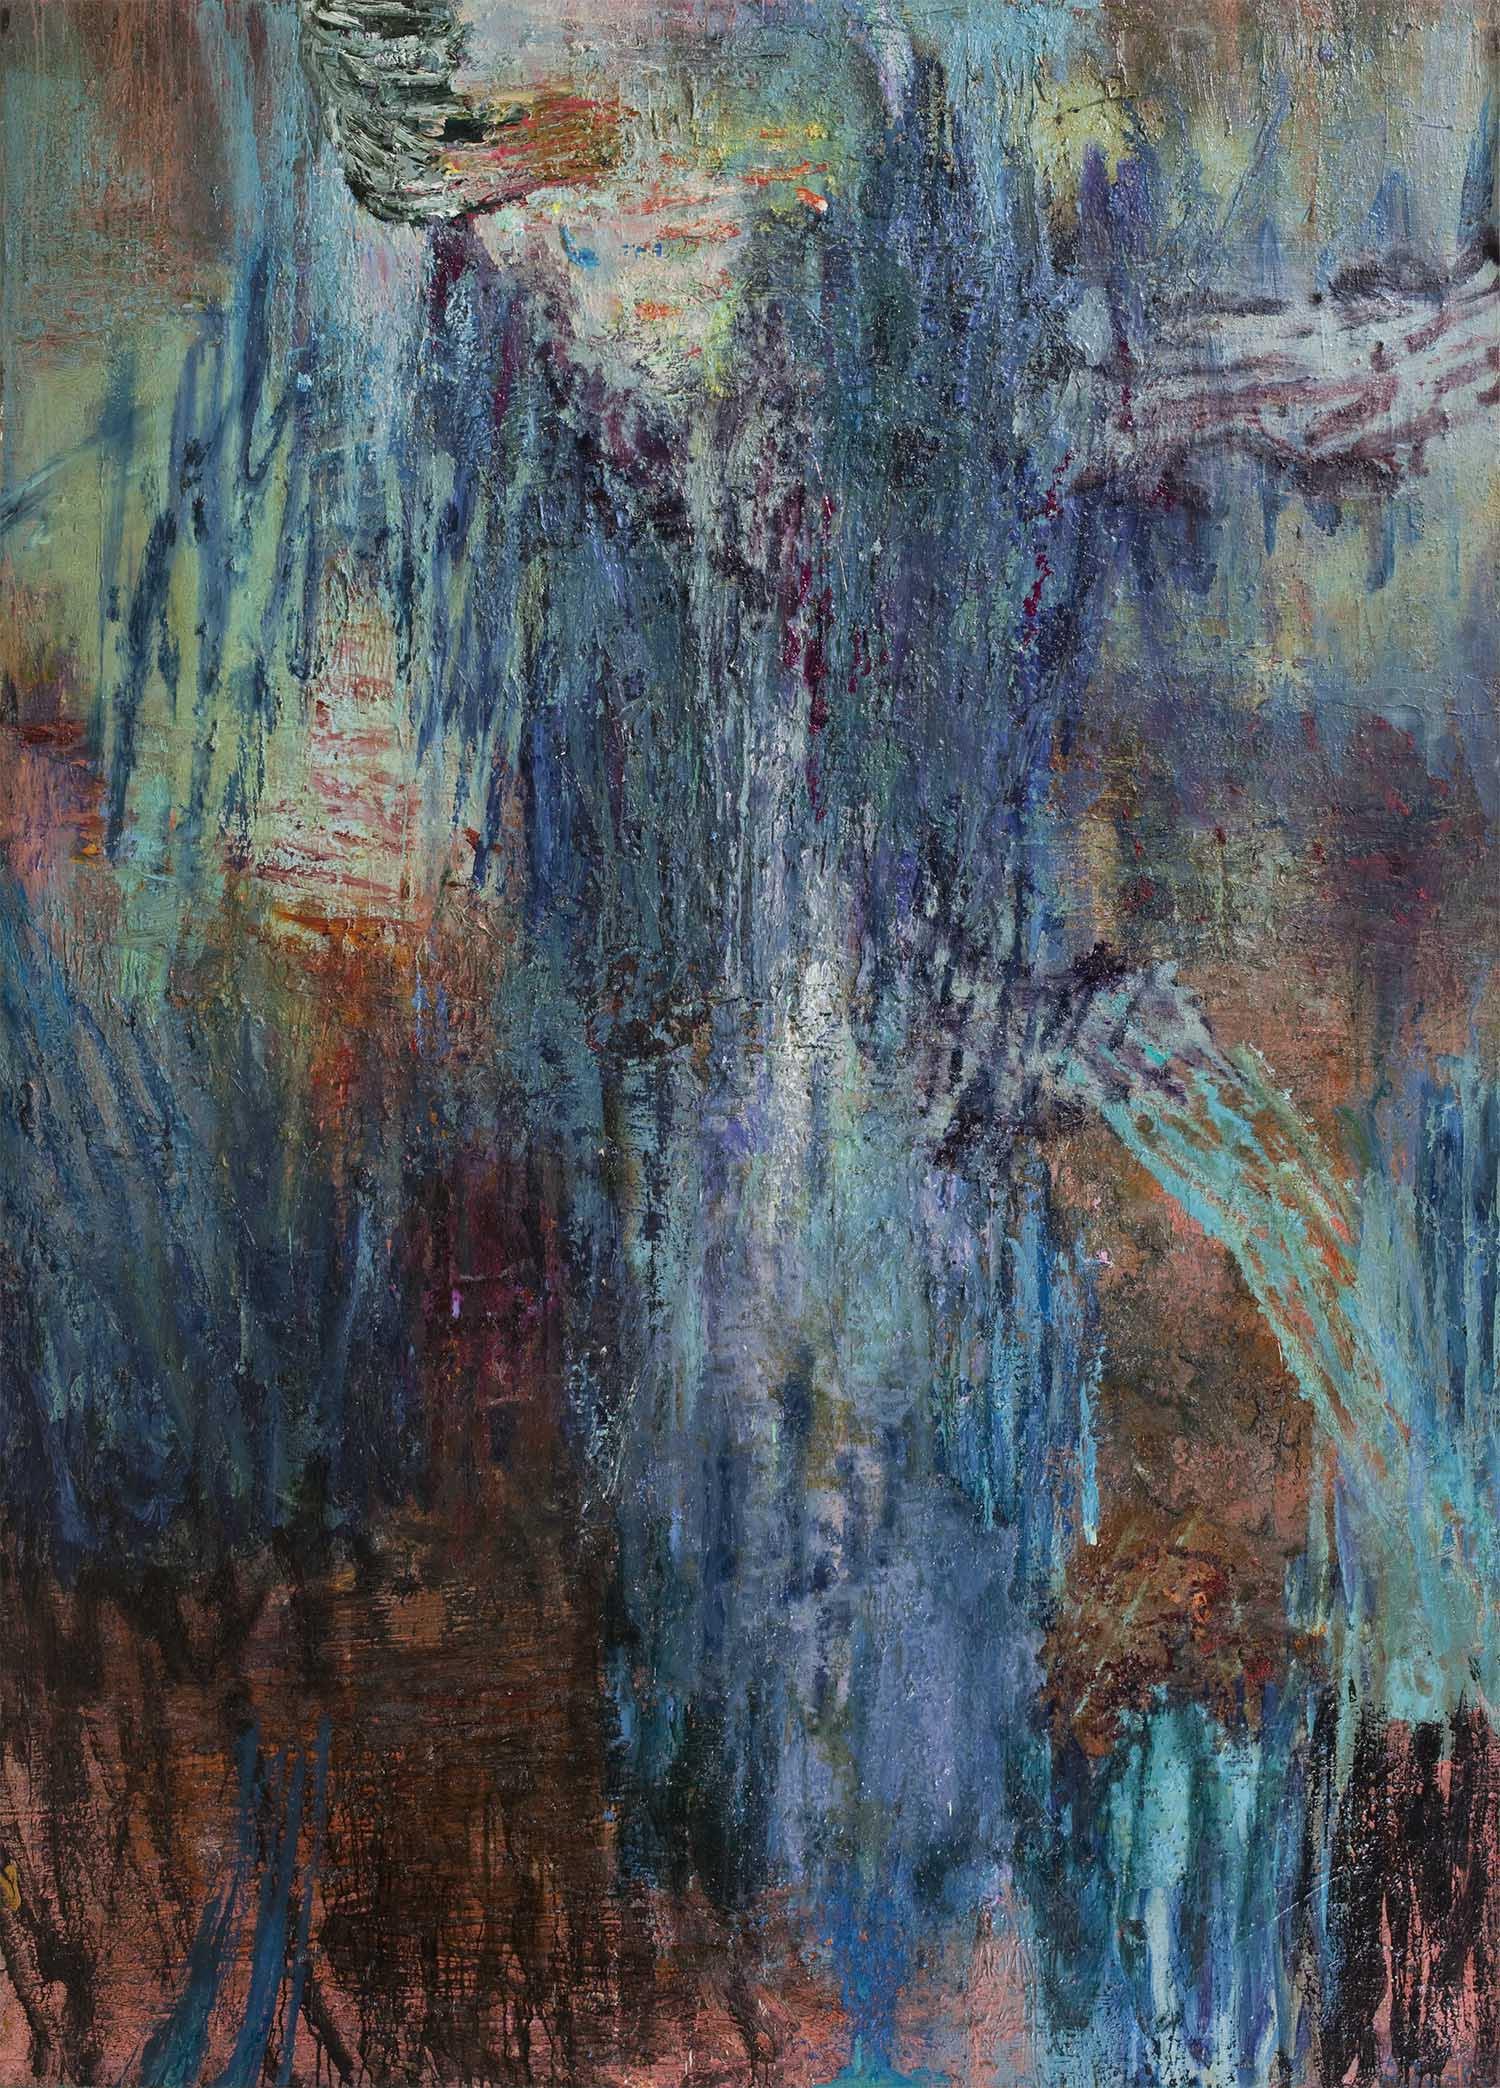 Oil on canvas. 230 x 190 cm